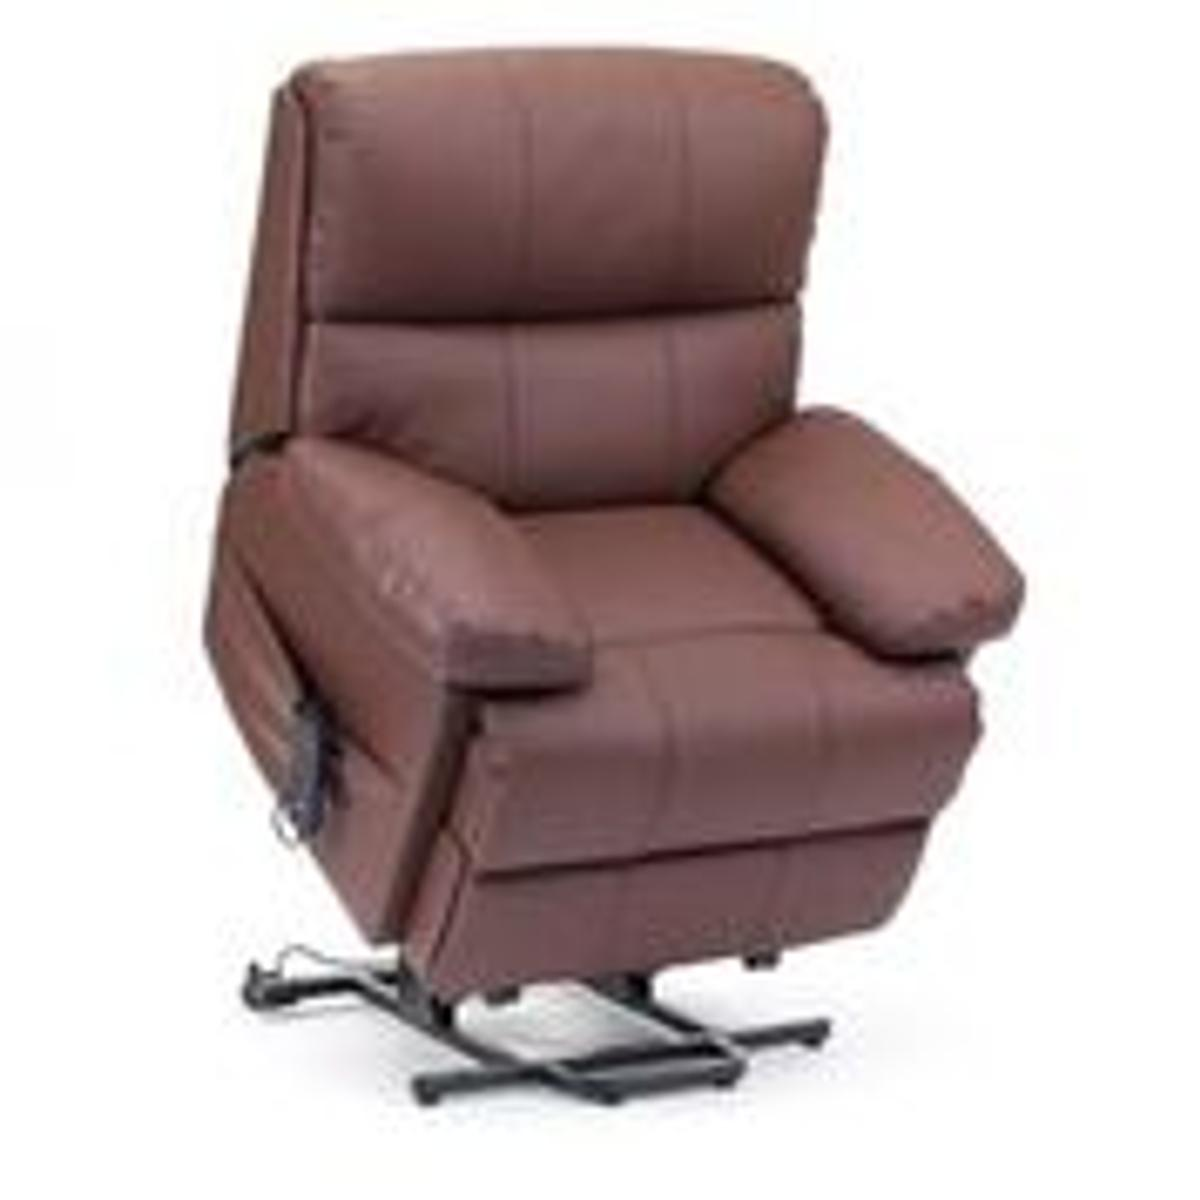 Fabulous New Riser Recliner Chair In Leather In Ll29 Bay Fur 399 00 Ibusinesslaw Wood Chair Design Ideas Ibusinesslaworg